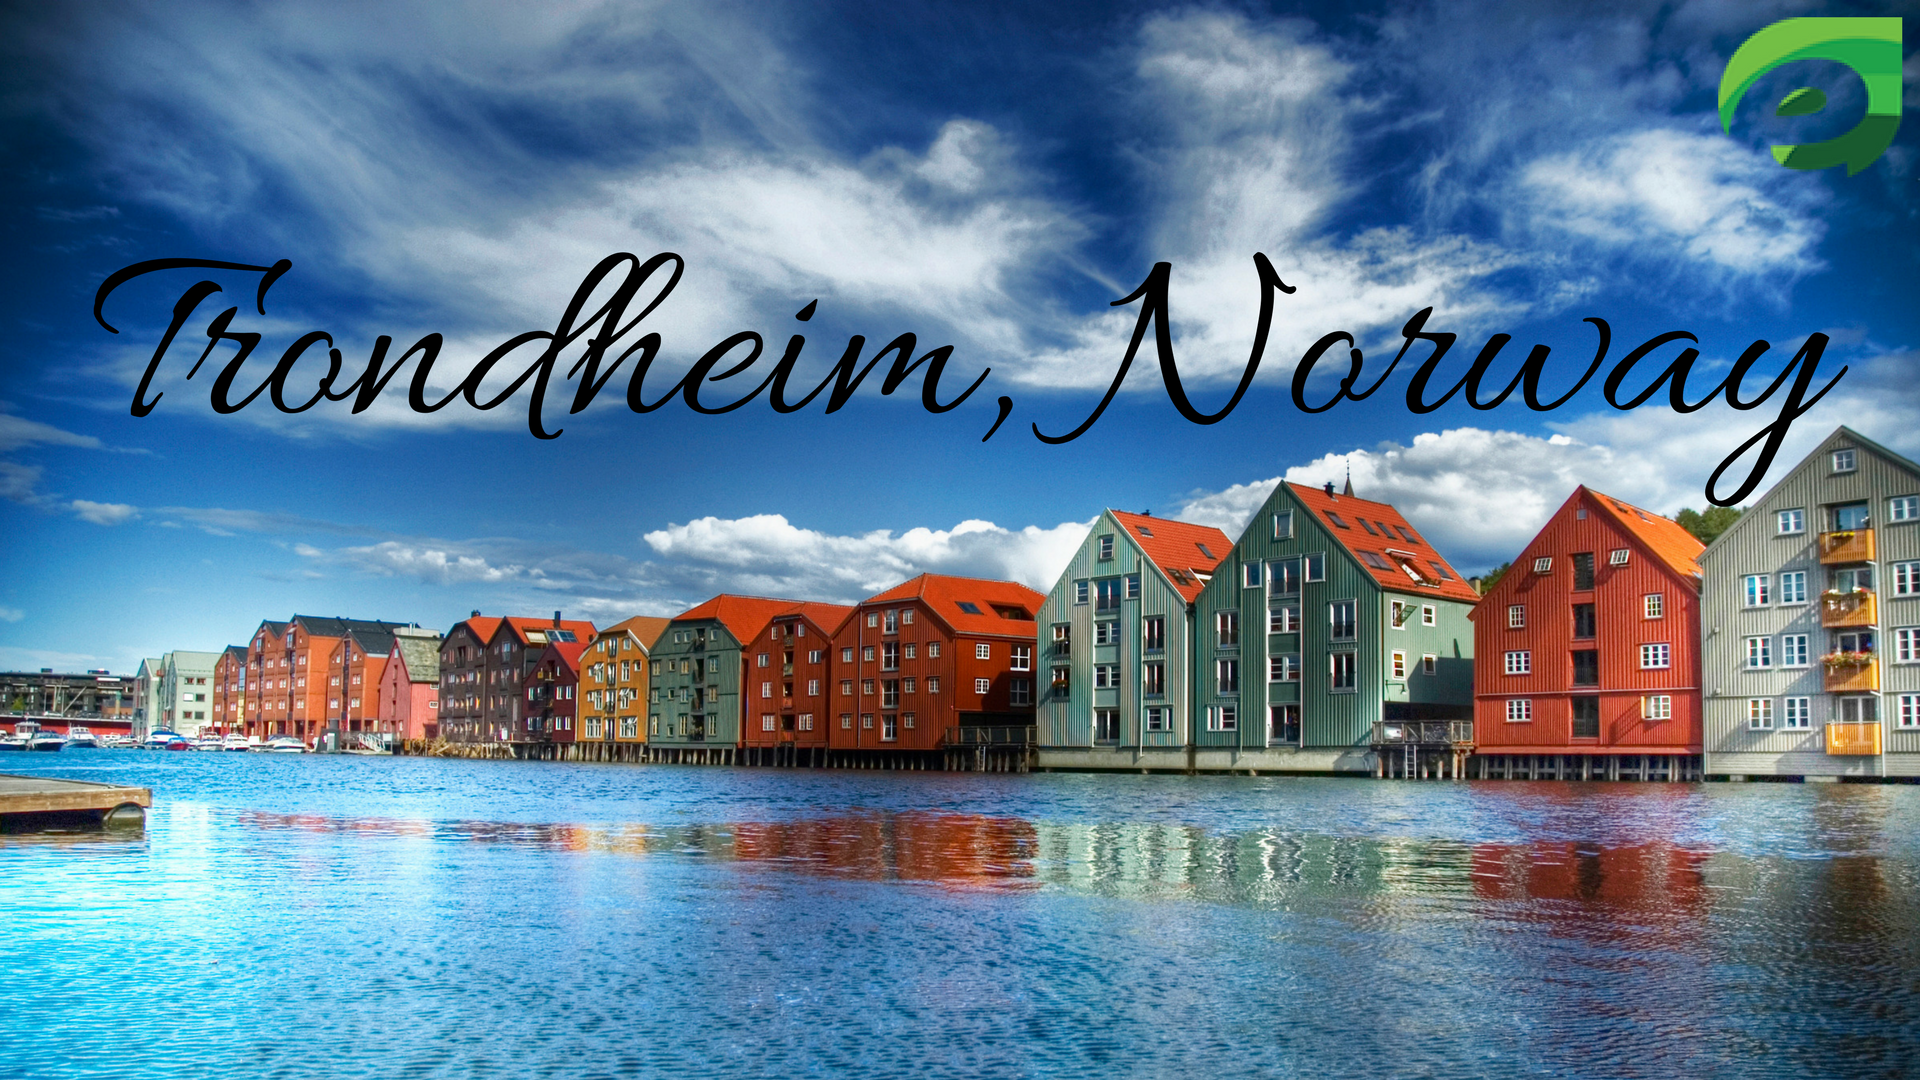 small cities in Europe-trondheim